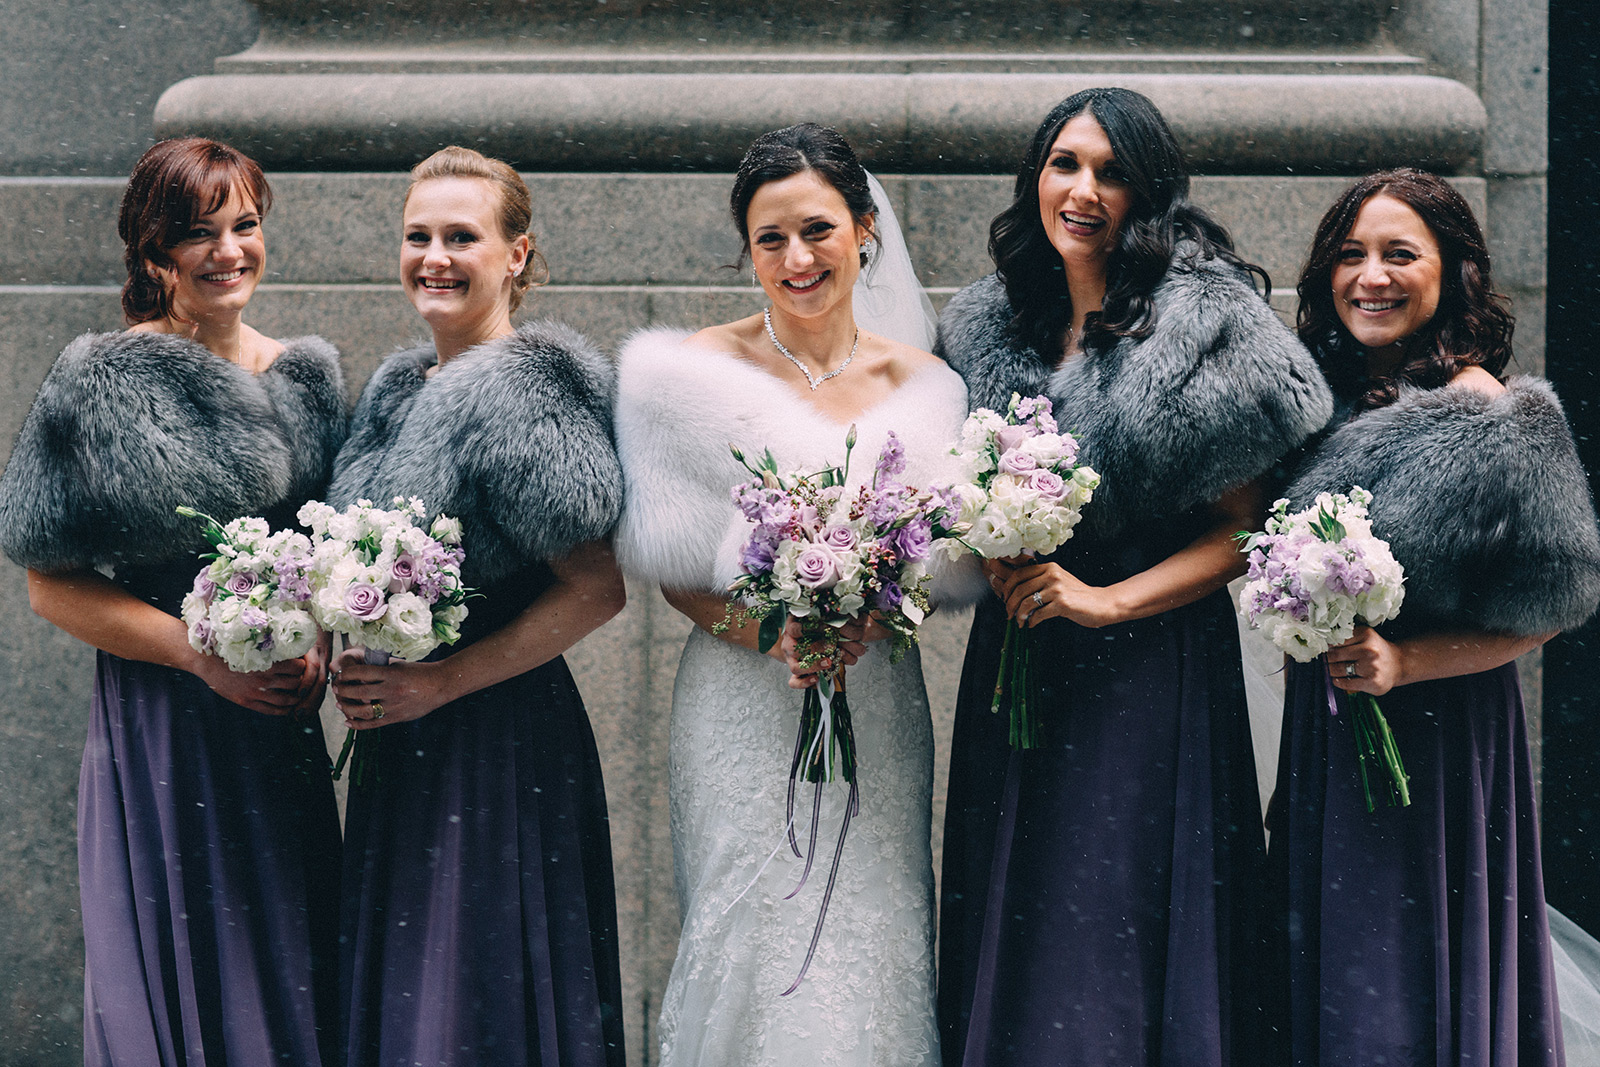 One-King-West-Toronto-wedding-photography_Sam-Wong-of-Visual-Cravings_KnR-15